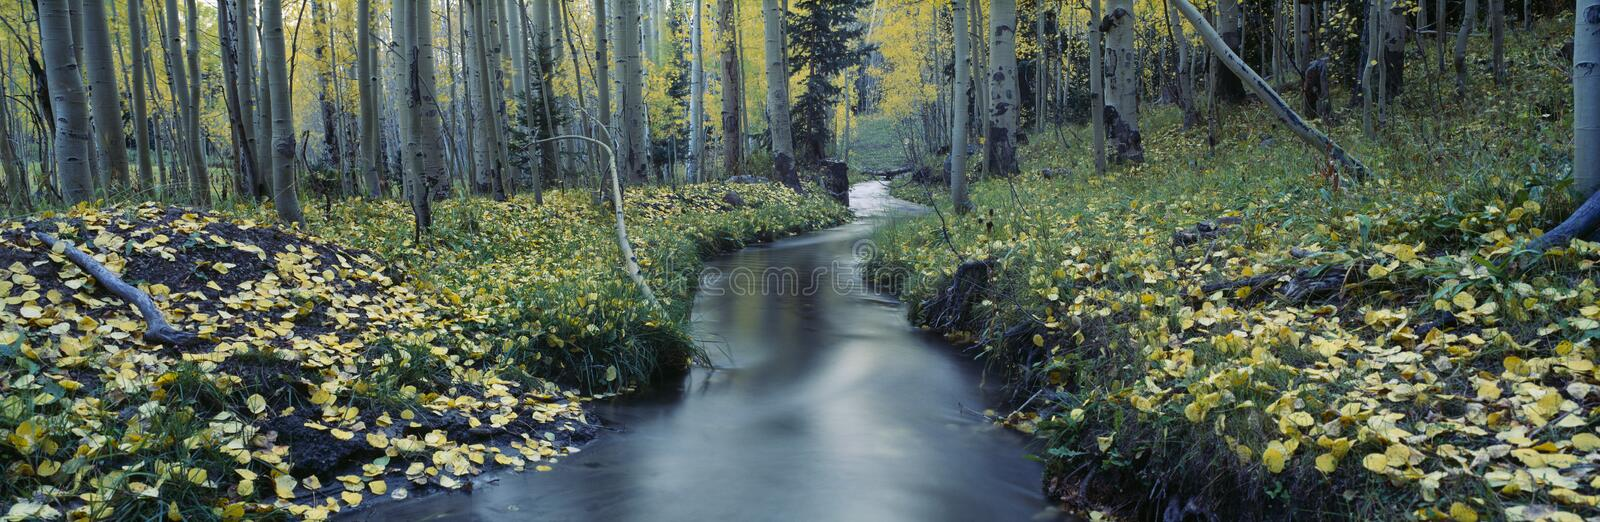 Stream in Uncompahgre National Forest royalty free stock photography